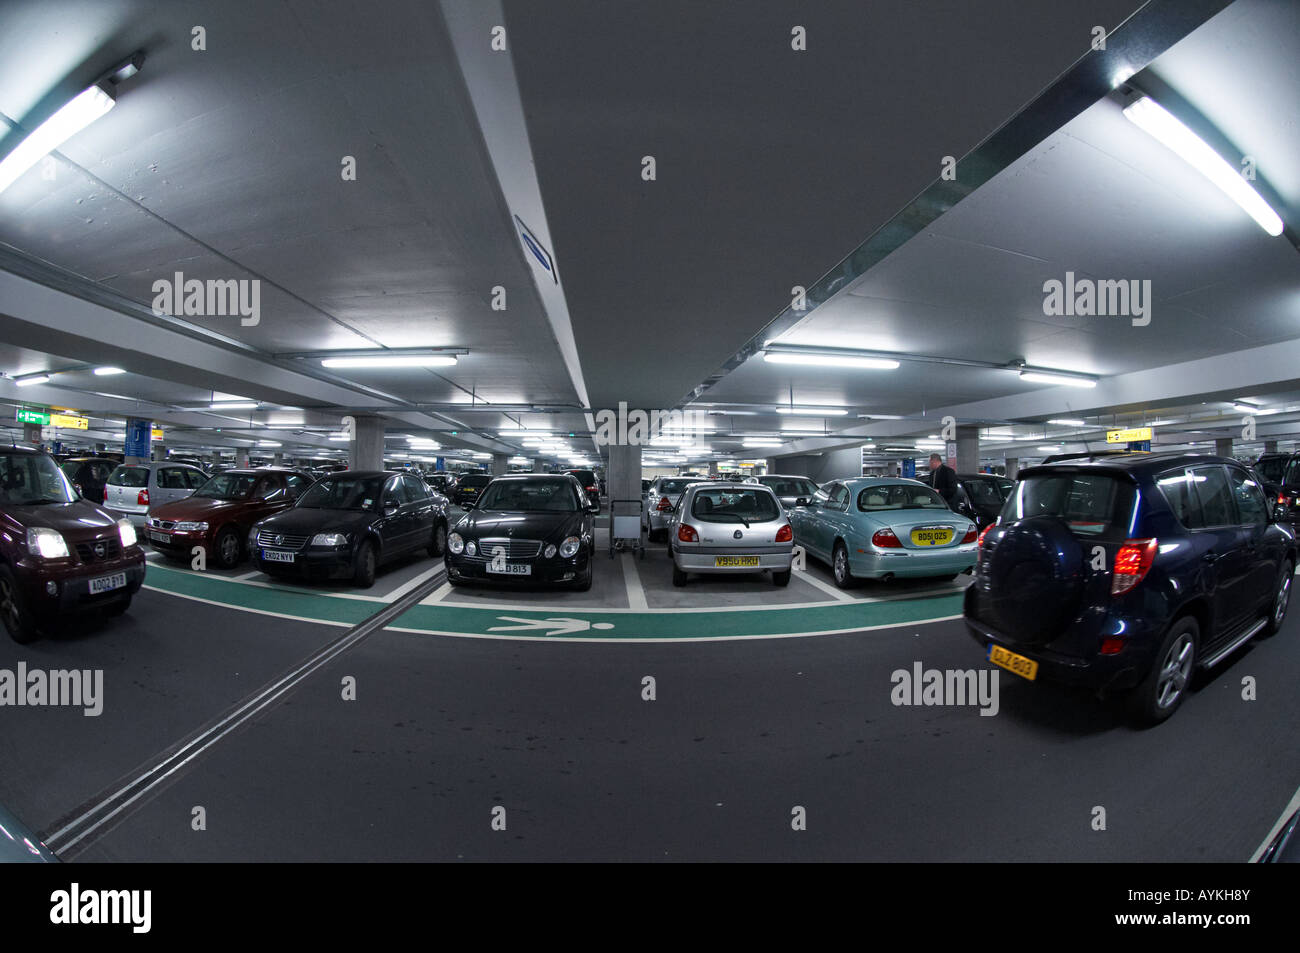 Heathrow Airport Car Park Stock Photos Heathrow Airport Car Park